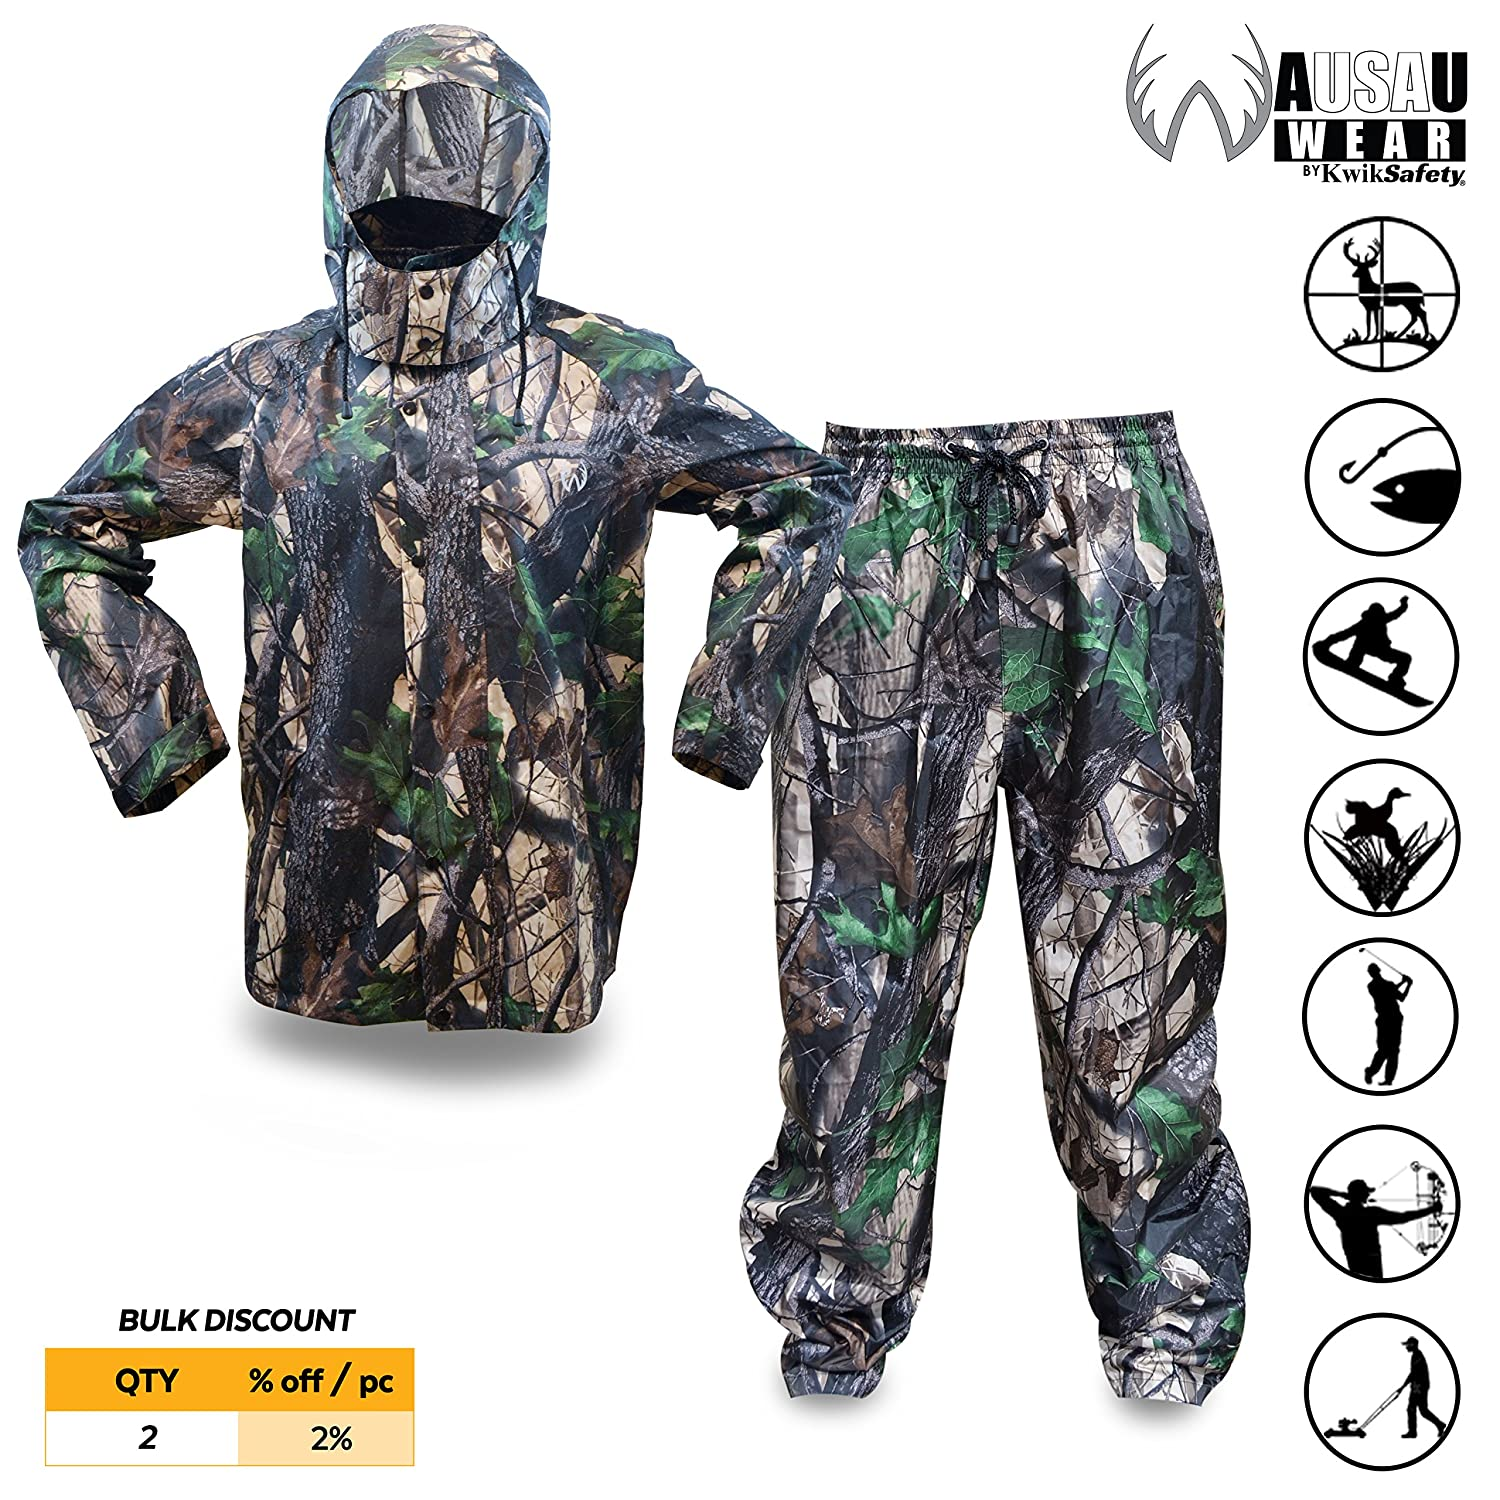 c975aa8507d1f THE KWIKSAFETY HUNTSMAN - Become one with nature with our KwikSafety  WausauWear HUNTSMAN Outdoor Gear. Our Camo Rain Suit and our Soft Shell  Jacket are ...